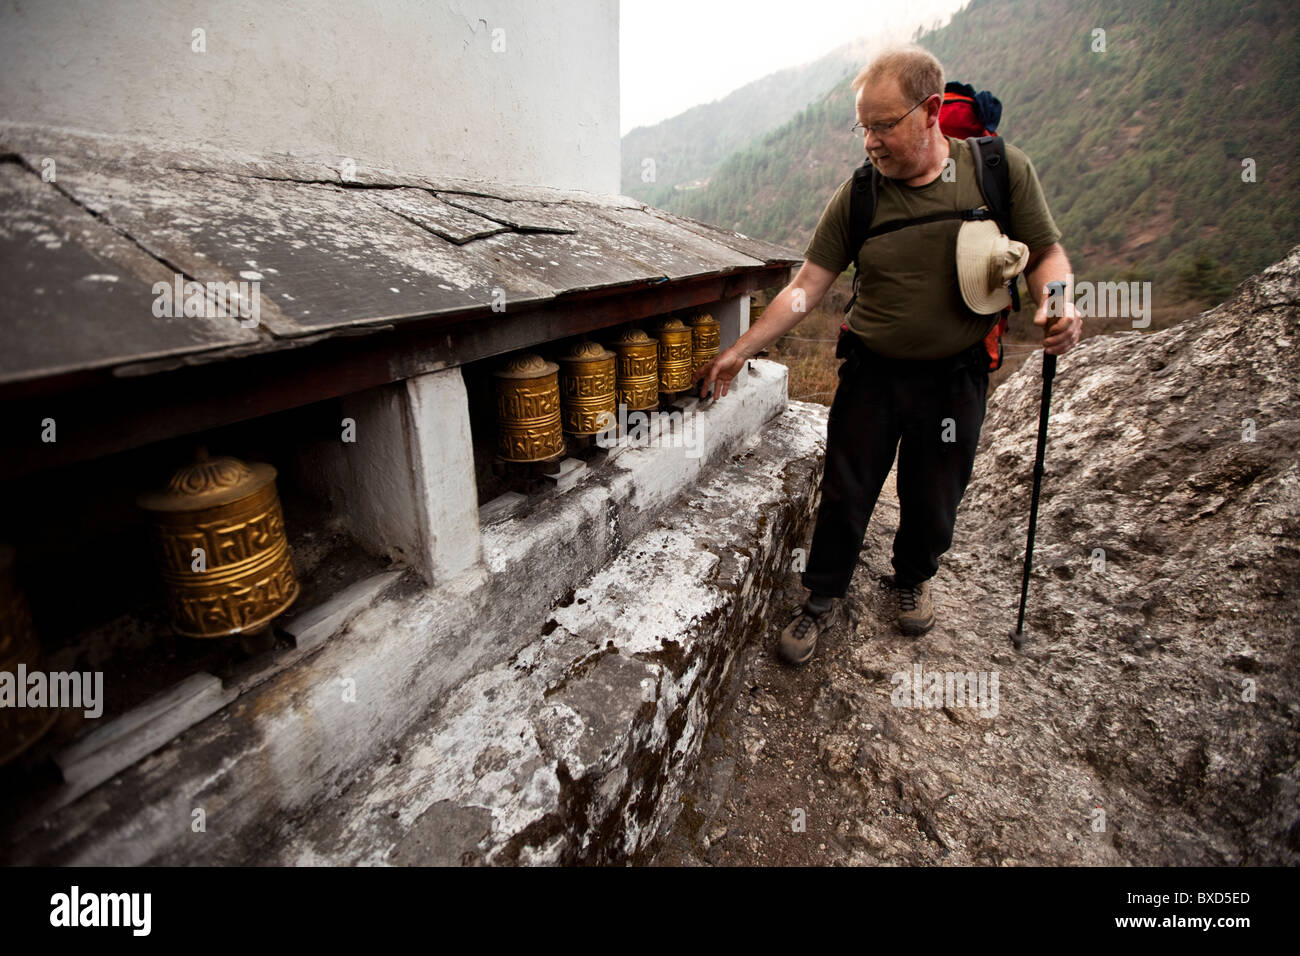 A male trekker spins prayer wheels while navigating the trail out of Lukla, Nepal. - Stock Image